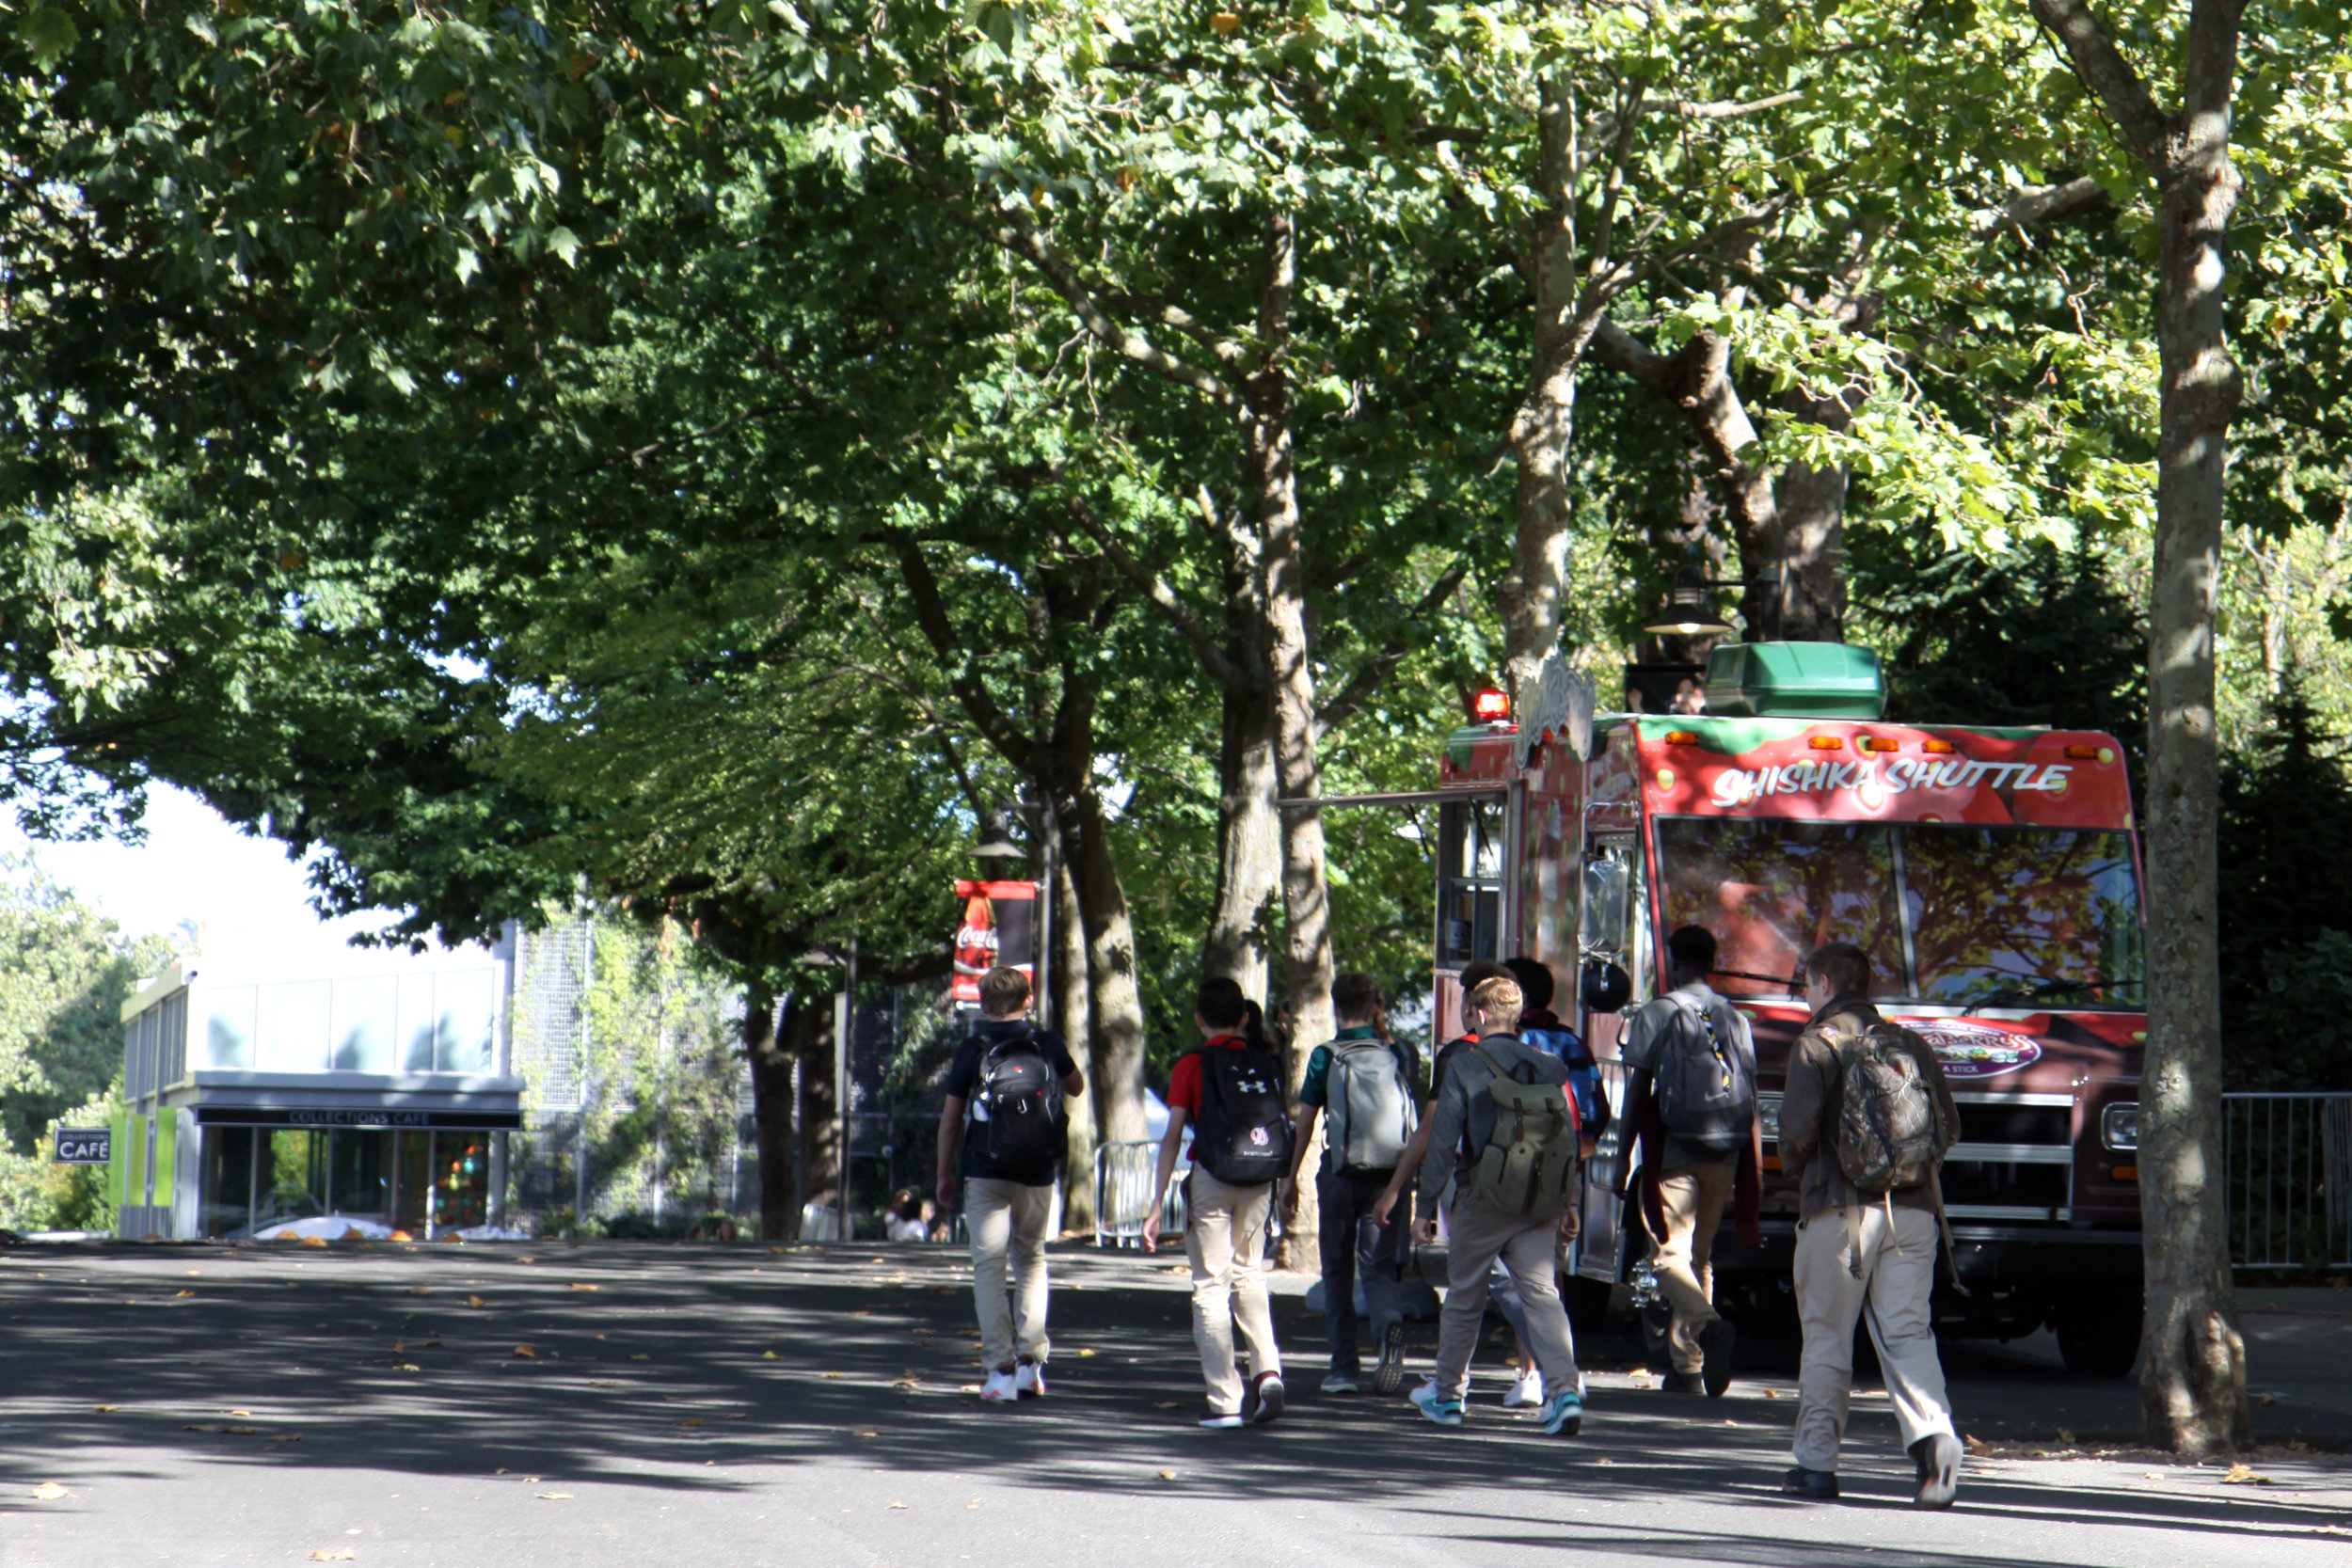 Seattle Center food truck